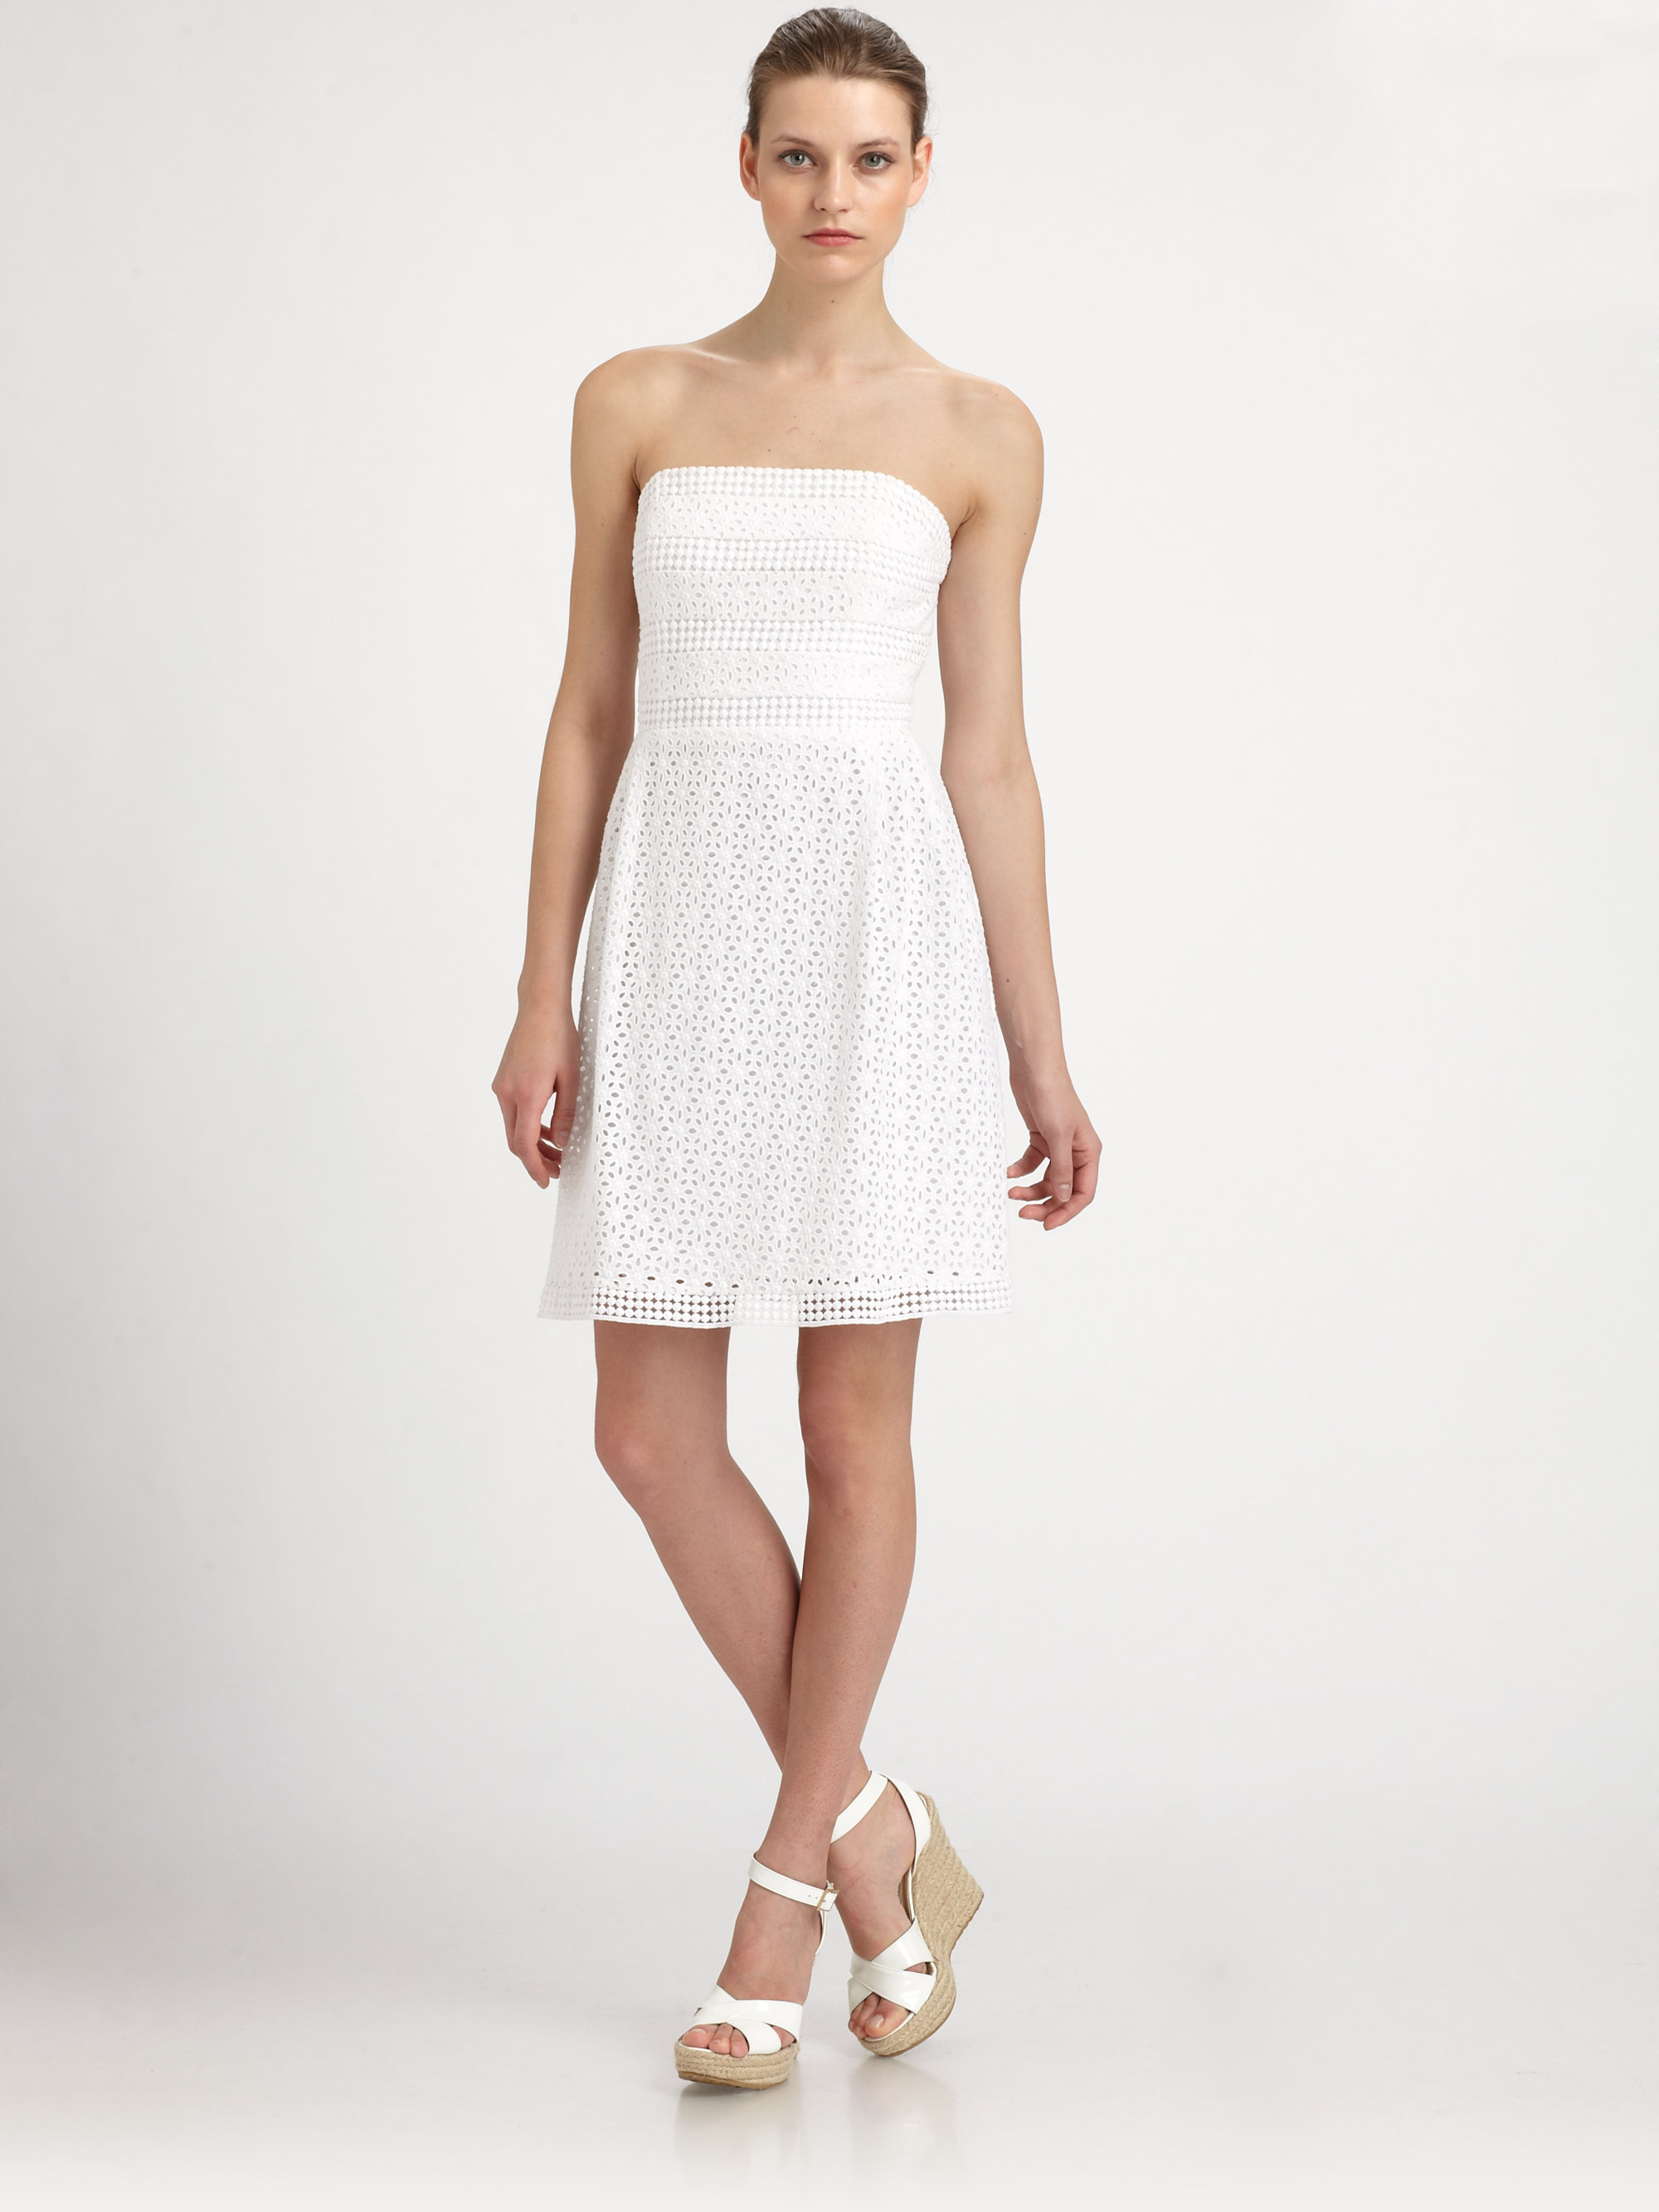 bcf9b090b63c Very Lyst - Laundry By Shelli Segal Strapless Cotton Eyelet Dress in White  RC86